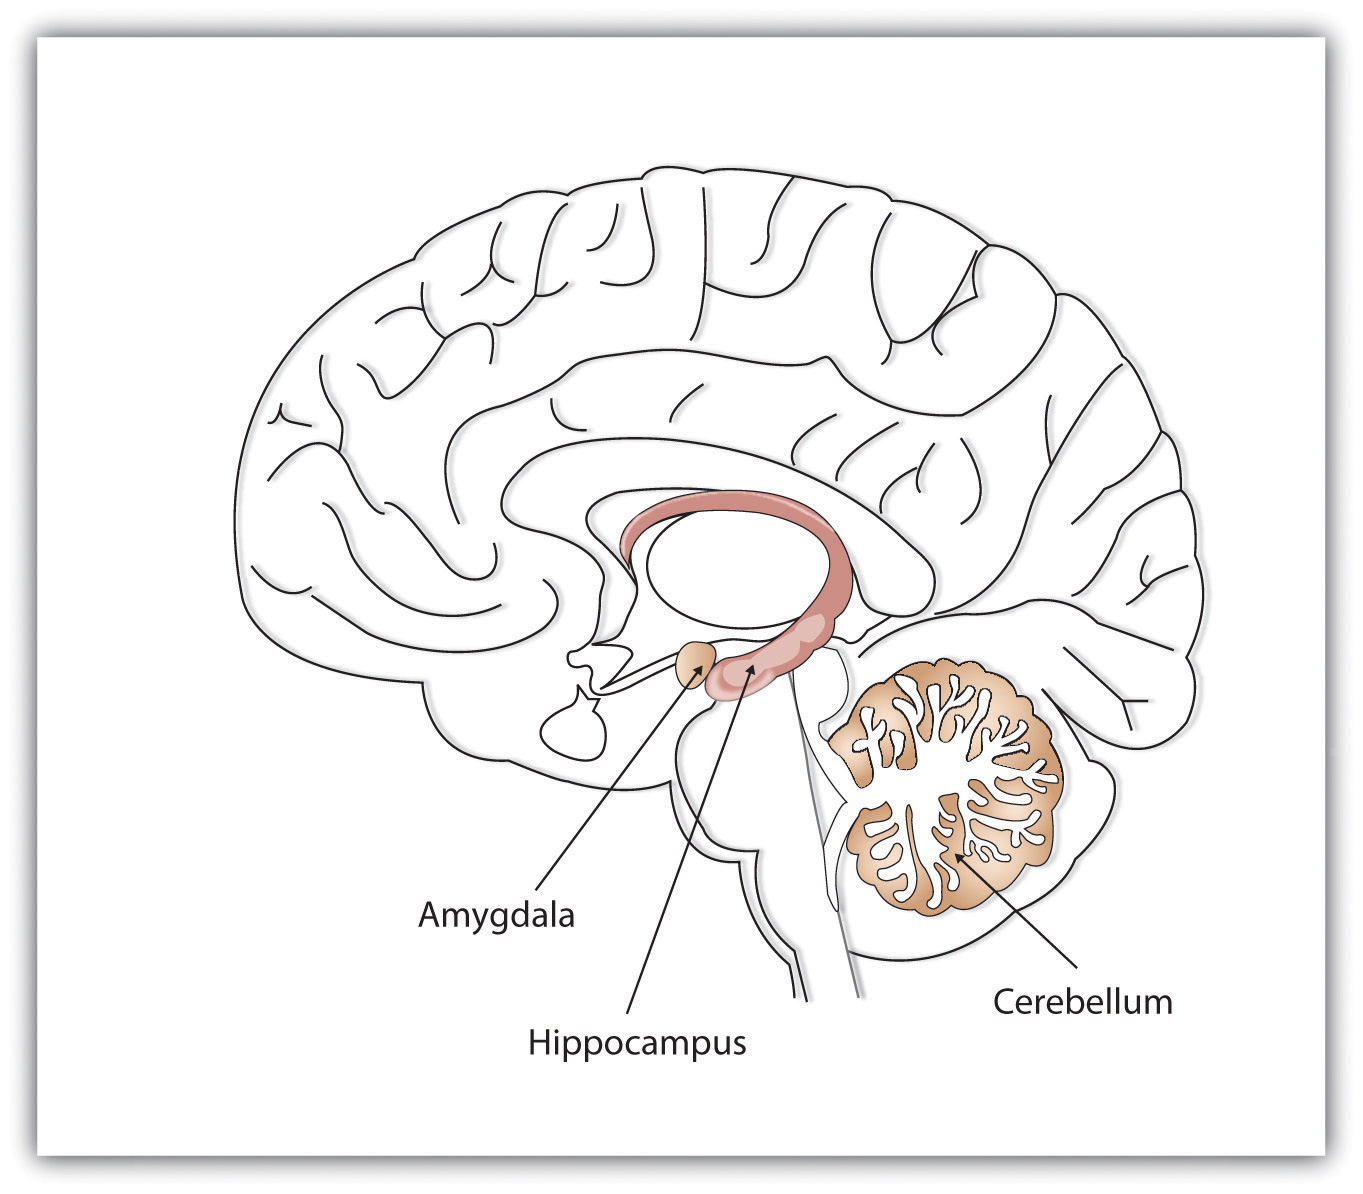 the role of amygdala in williams Amygdala: what does it do jacinta robenstine the role of the amygdala j neuropsychology 9(3): 382-394 stimuli in williams syndrome j.